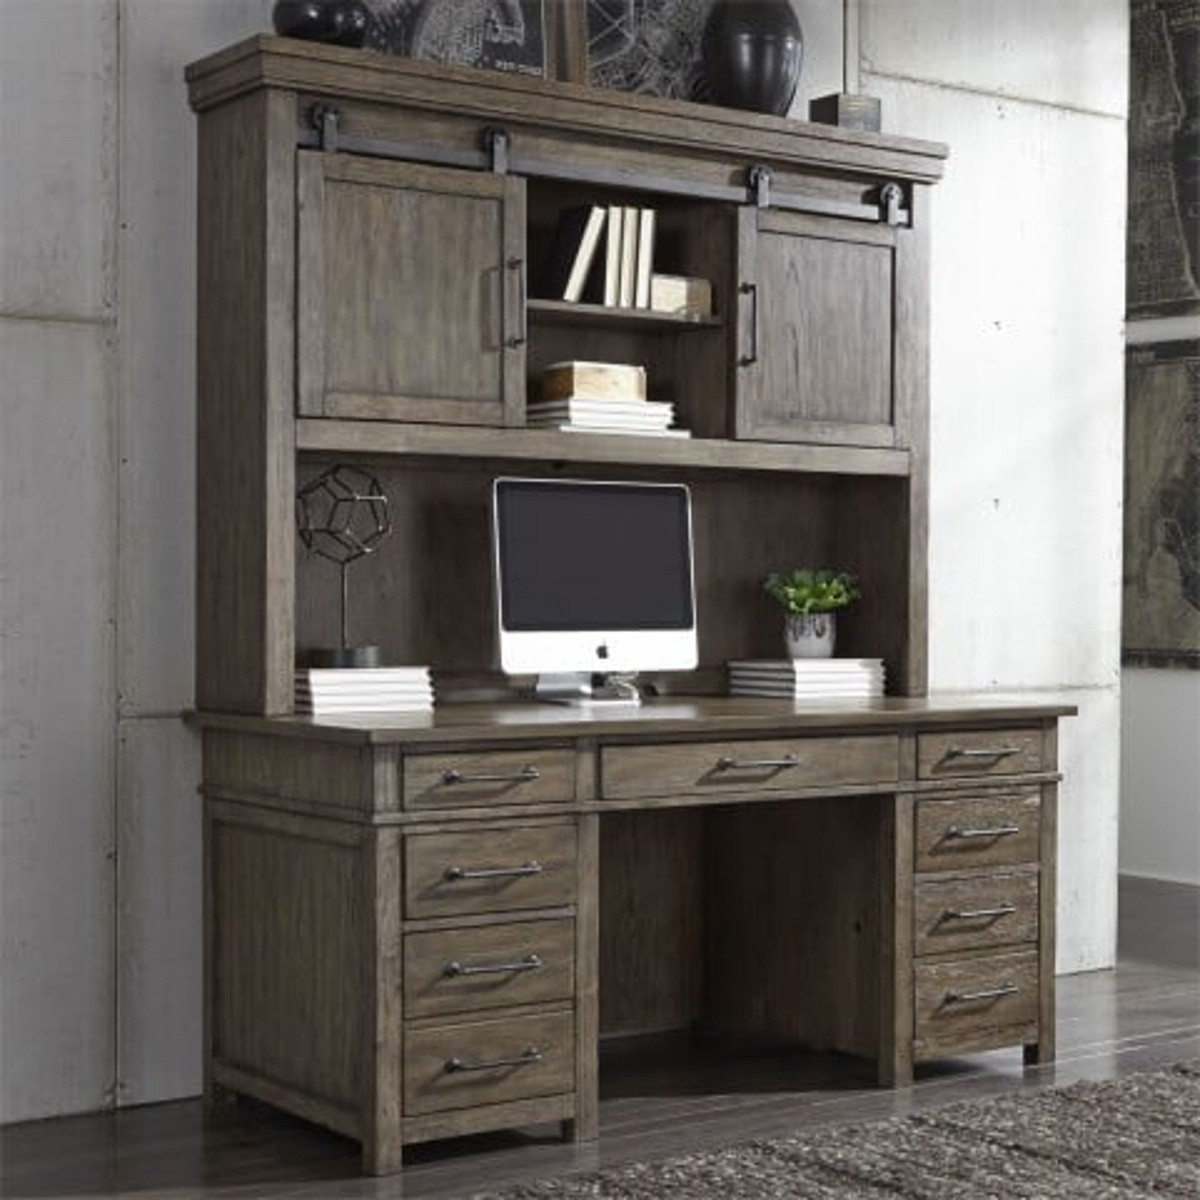 Liberty Sonoma Road Credenza With Hutch In Weather Beaten